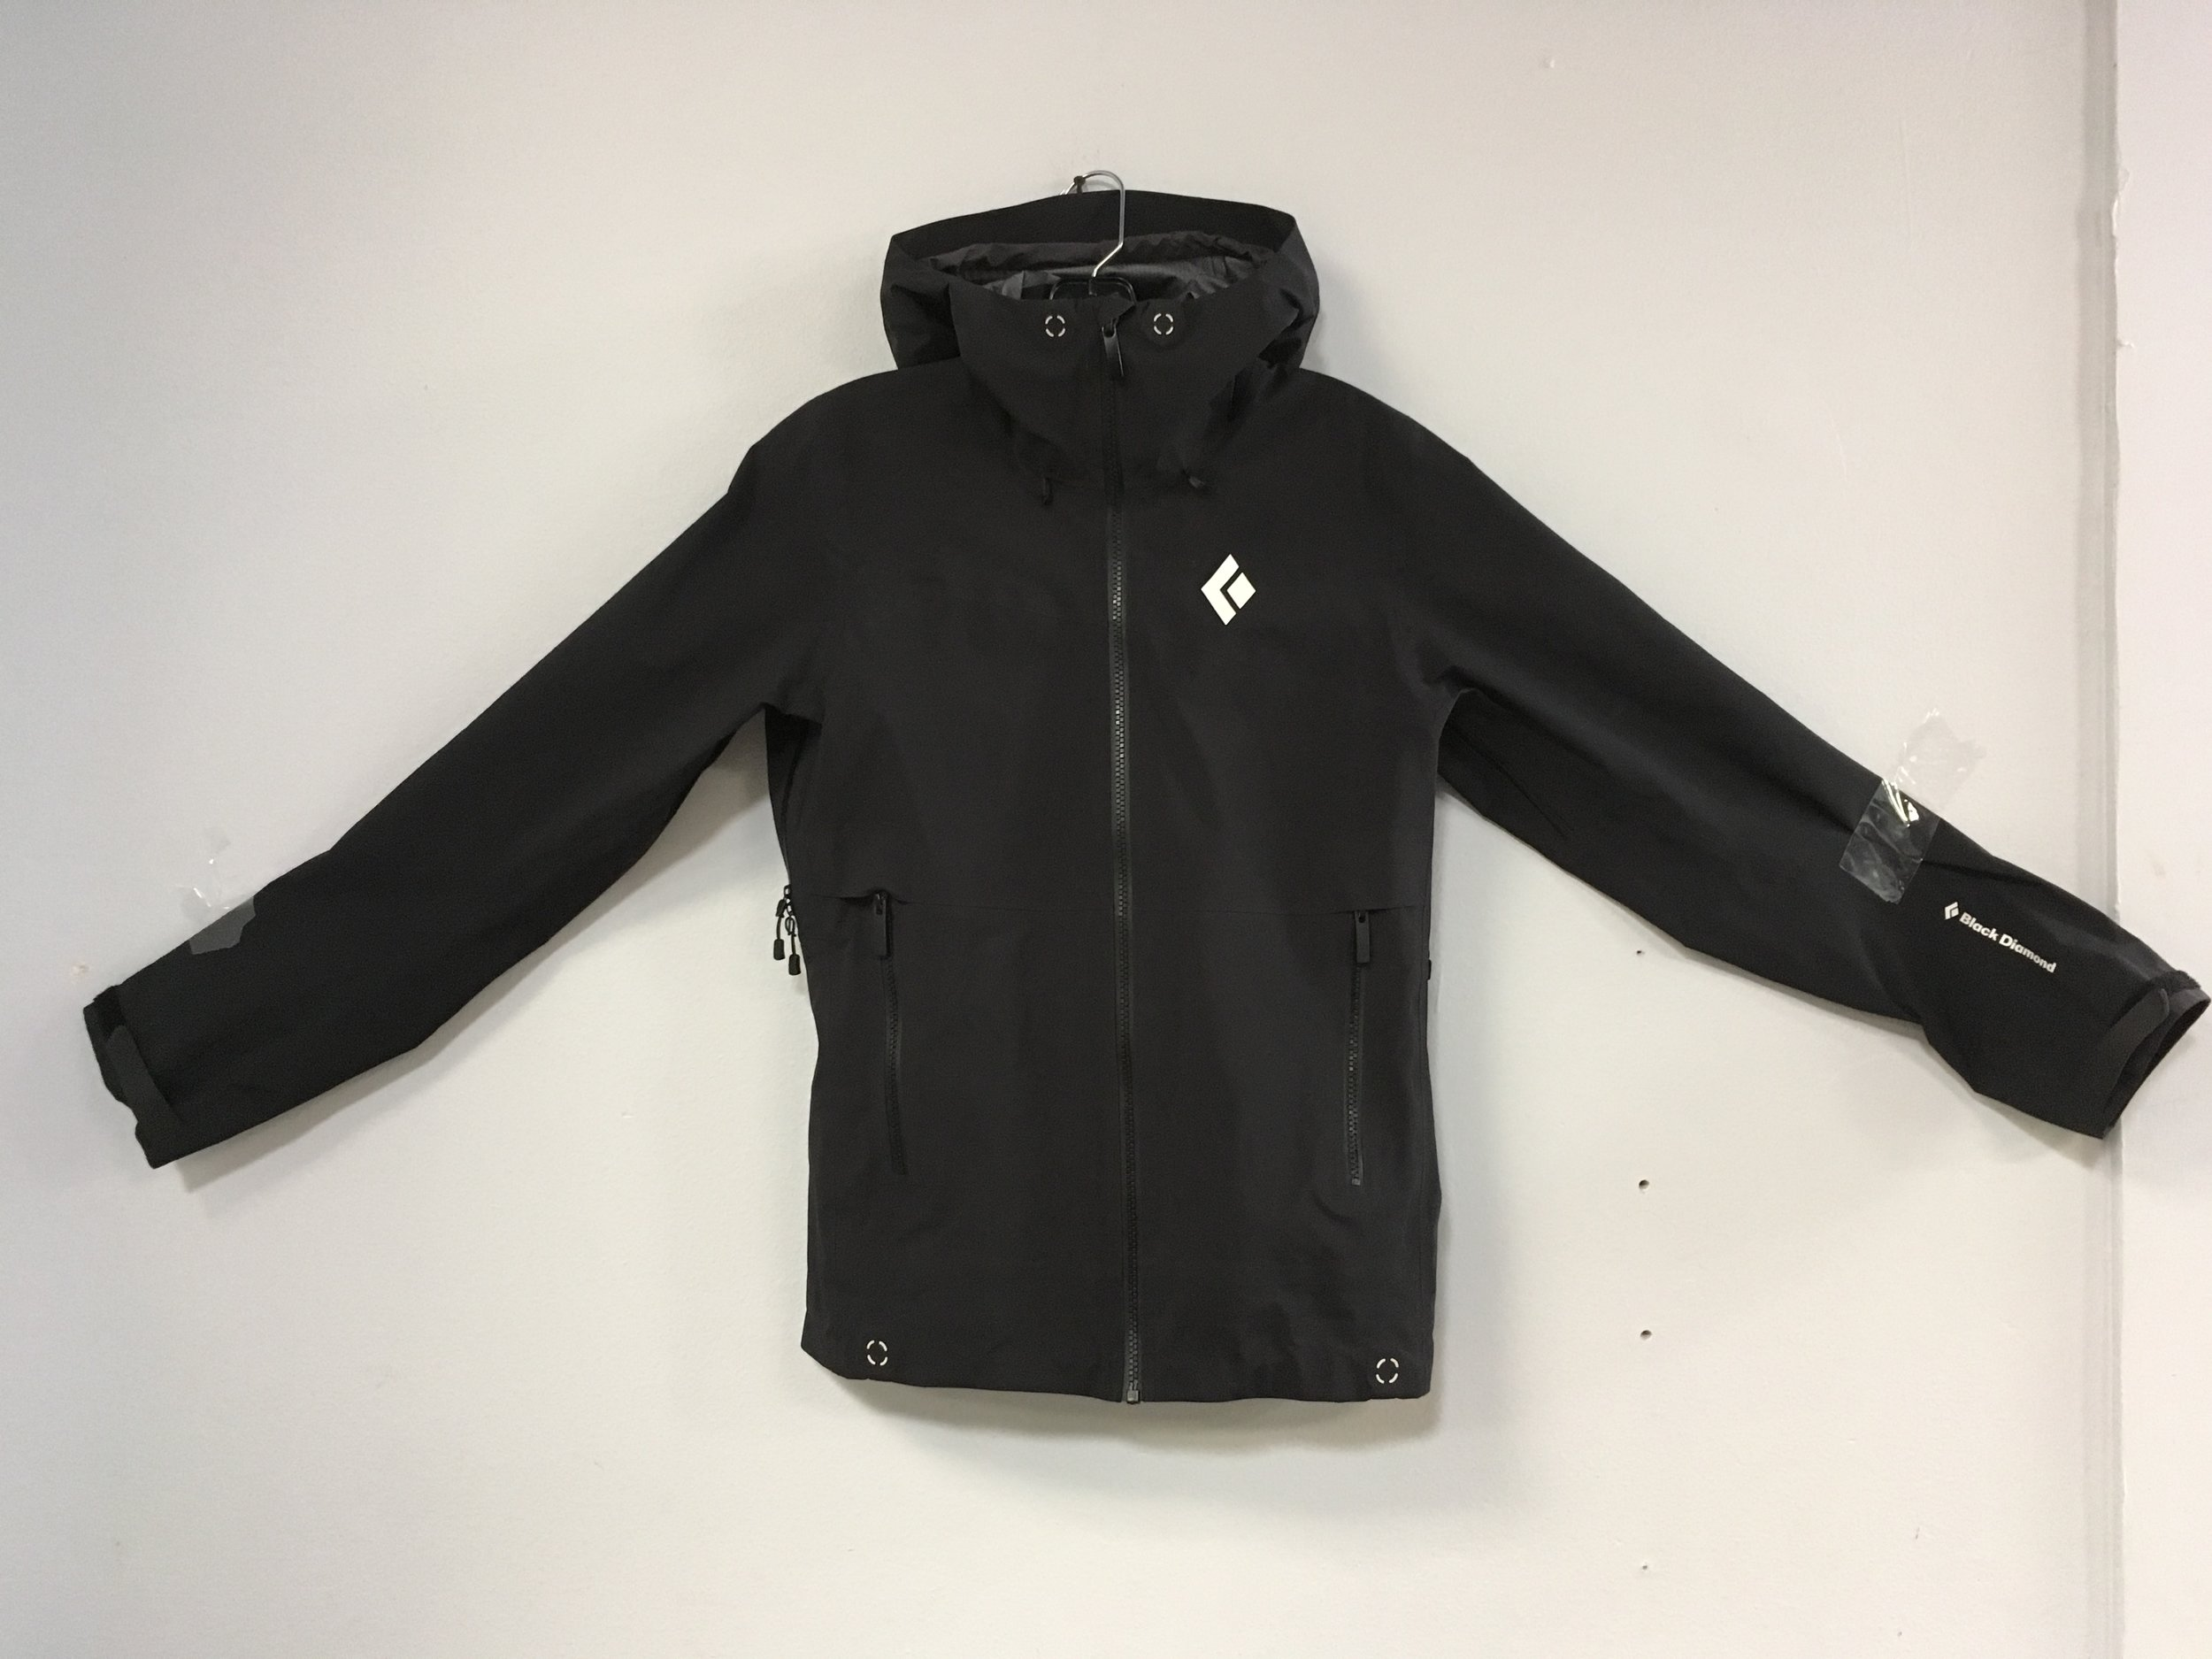 Looking for that new mountaineering shell? The Black Diamond Sharp End is one of the nicest alpine shells on the market! The jacket features Gore-Tex Pro Fabric that is lightweight, waterproof, and durable. Retail for the Sharp End is listed at $550 but you can pick it up for $274! The size is a woman's small.